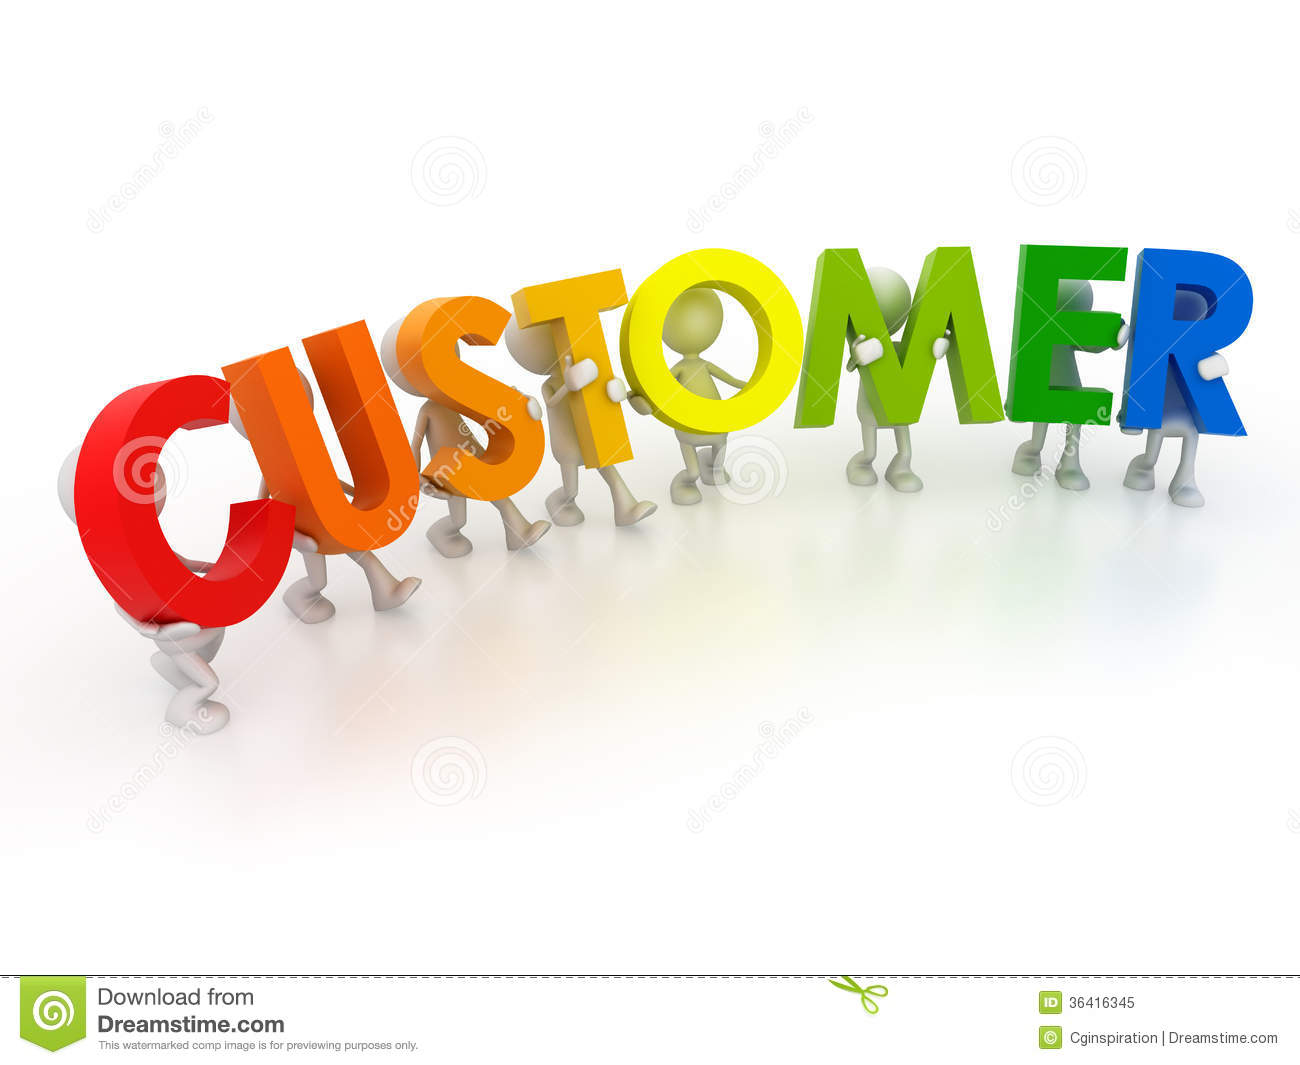 customer support team royalty clipart panda free clipart images rh clipartpanda com great customer service clip art customer service clip art images